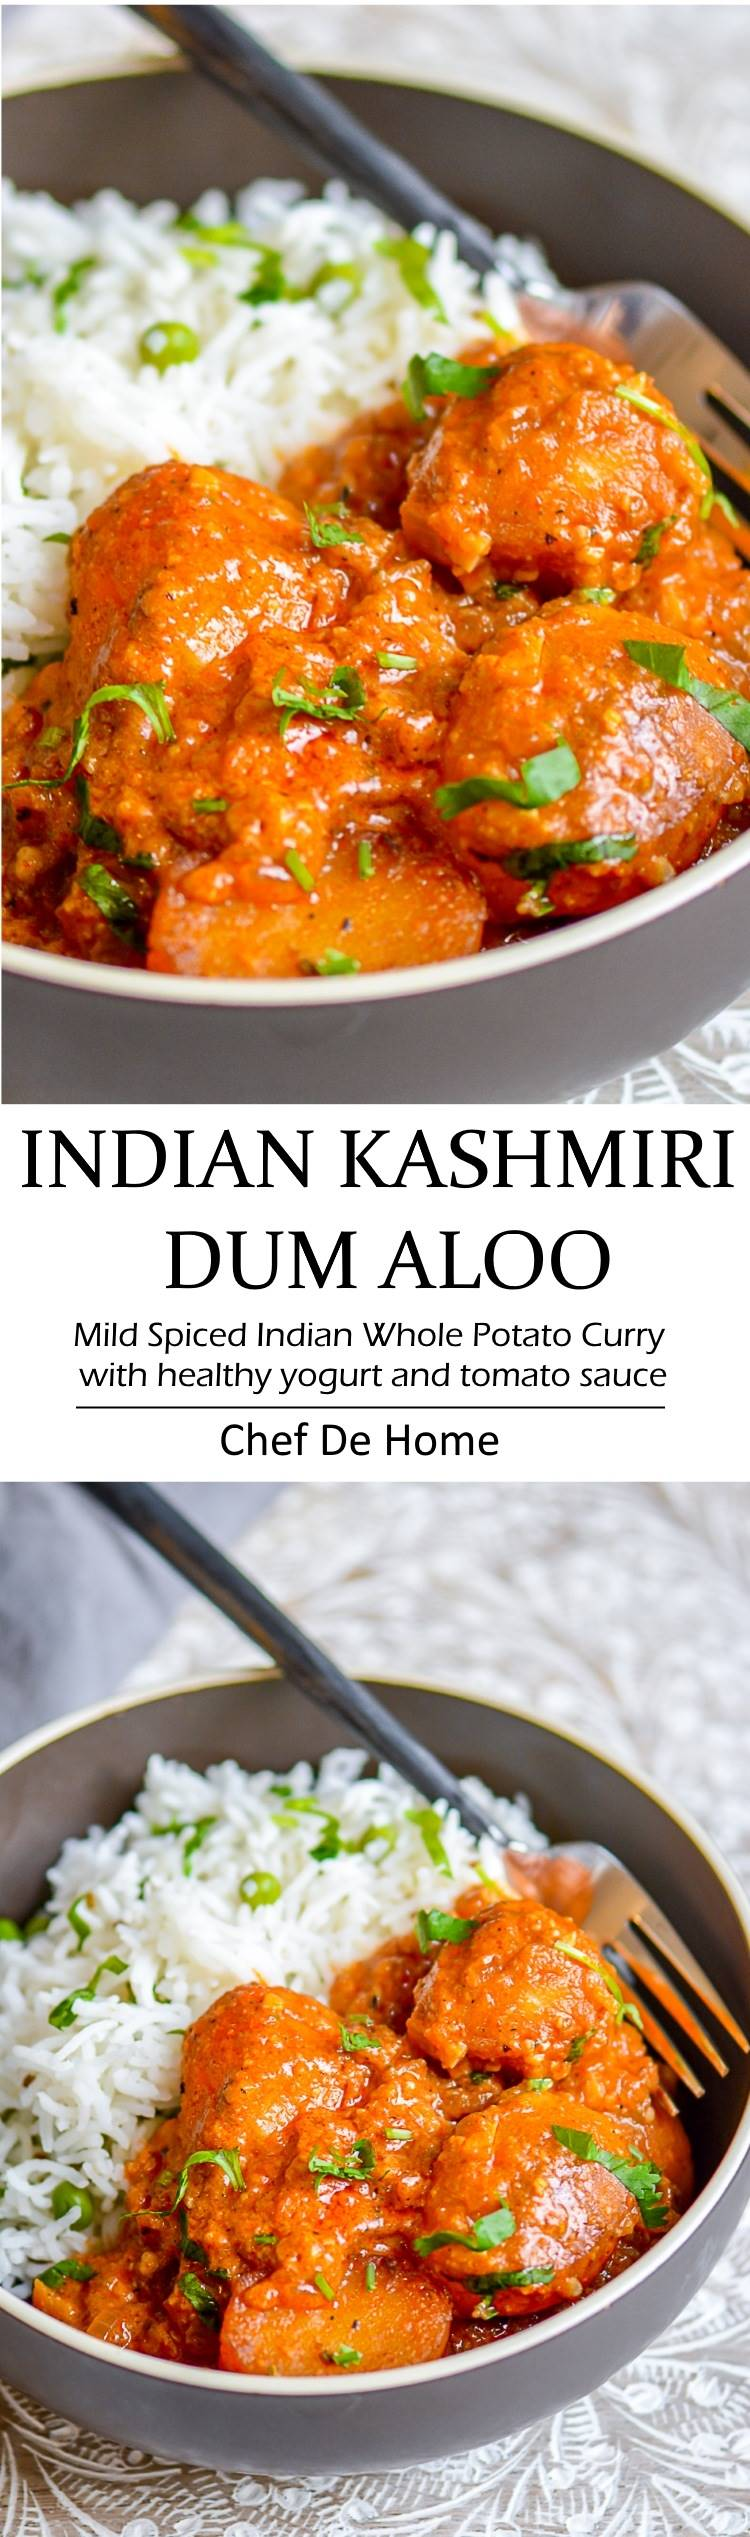 Kashmiri dum aloo recipe chefdehome delicious indian dinner with easy potato curry called kashmiri dum aloo a yogurt base and forumfinder Choice Image